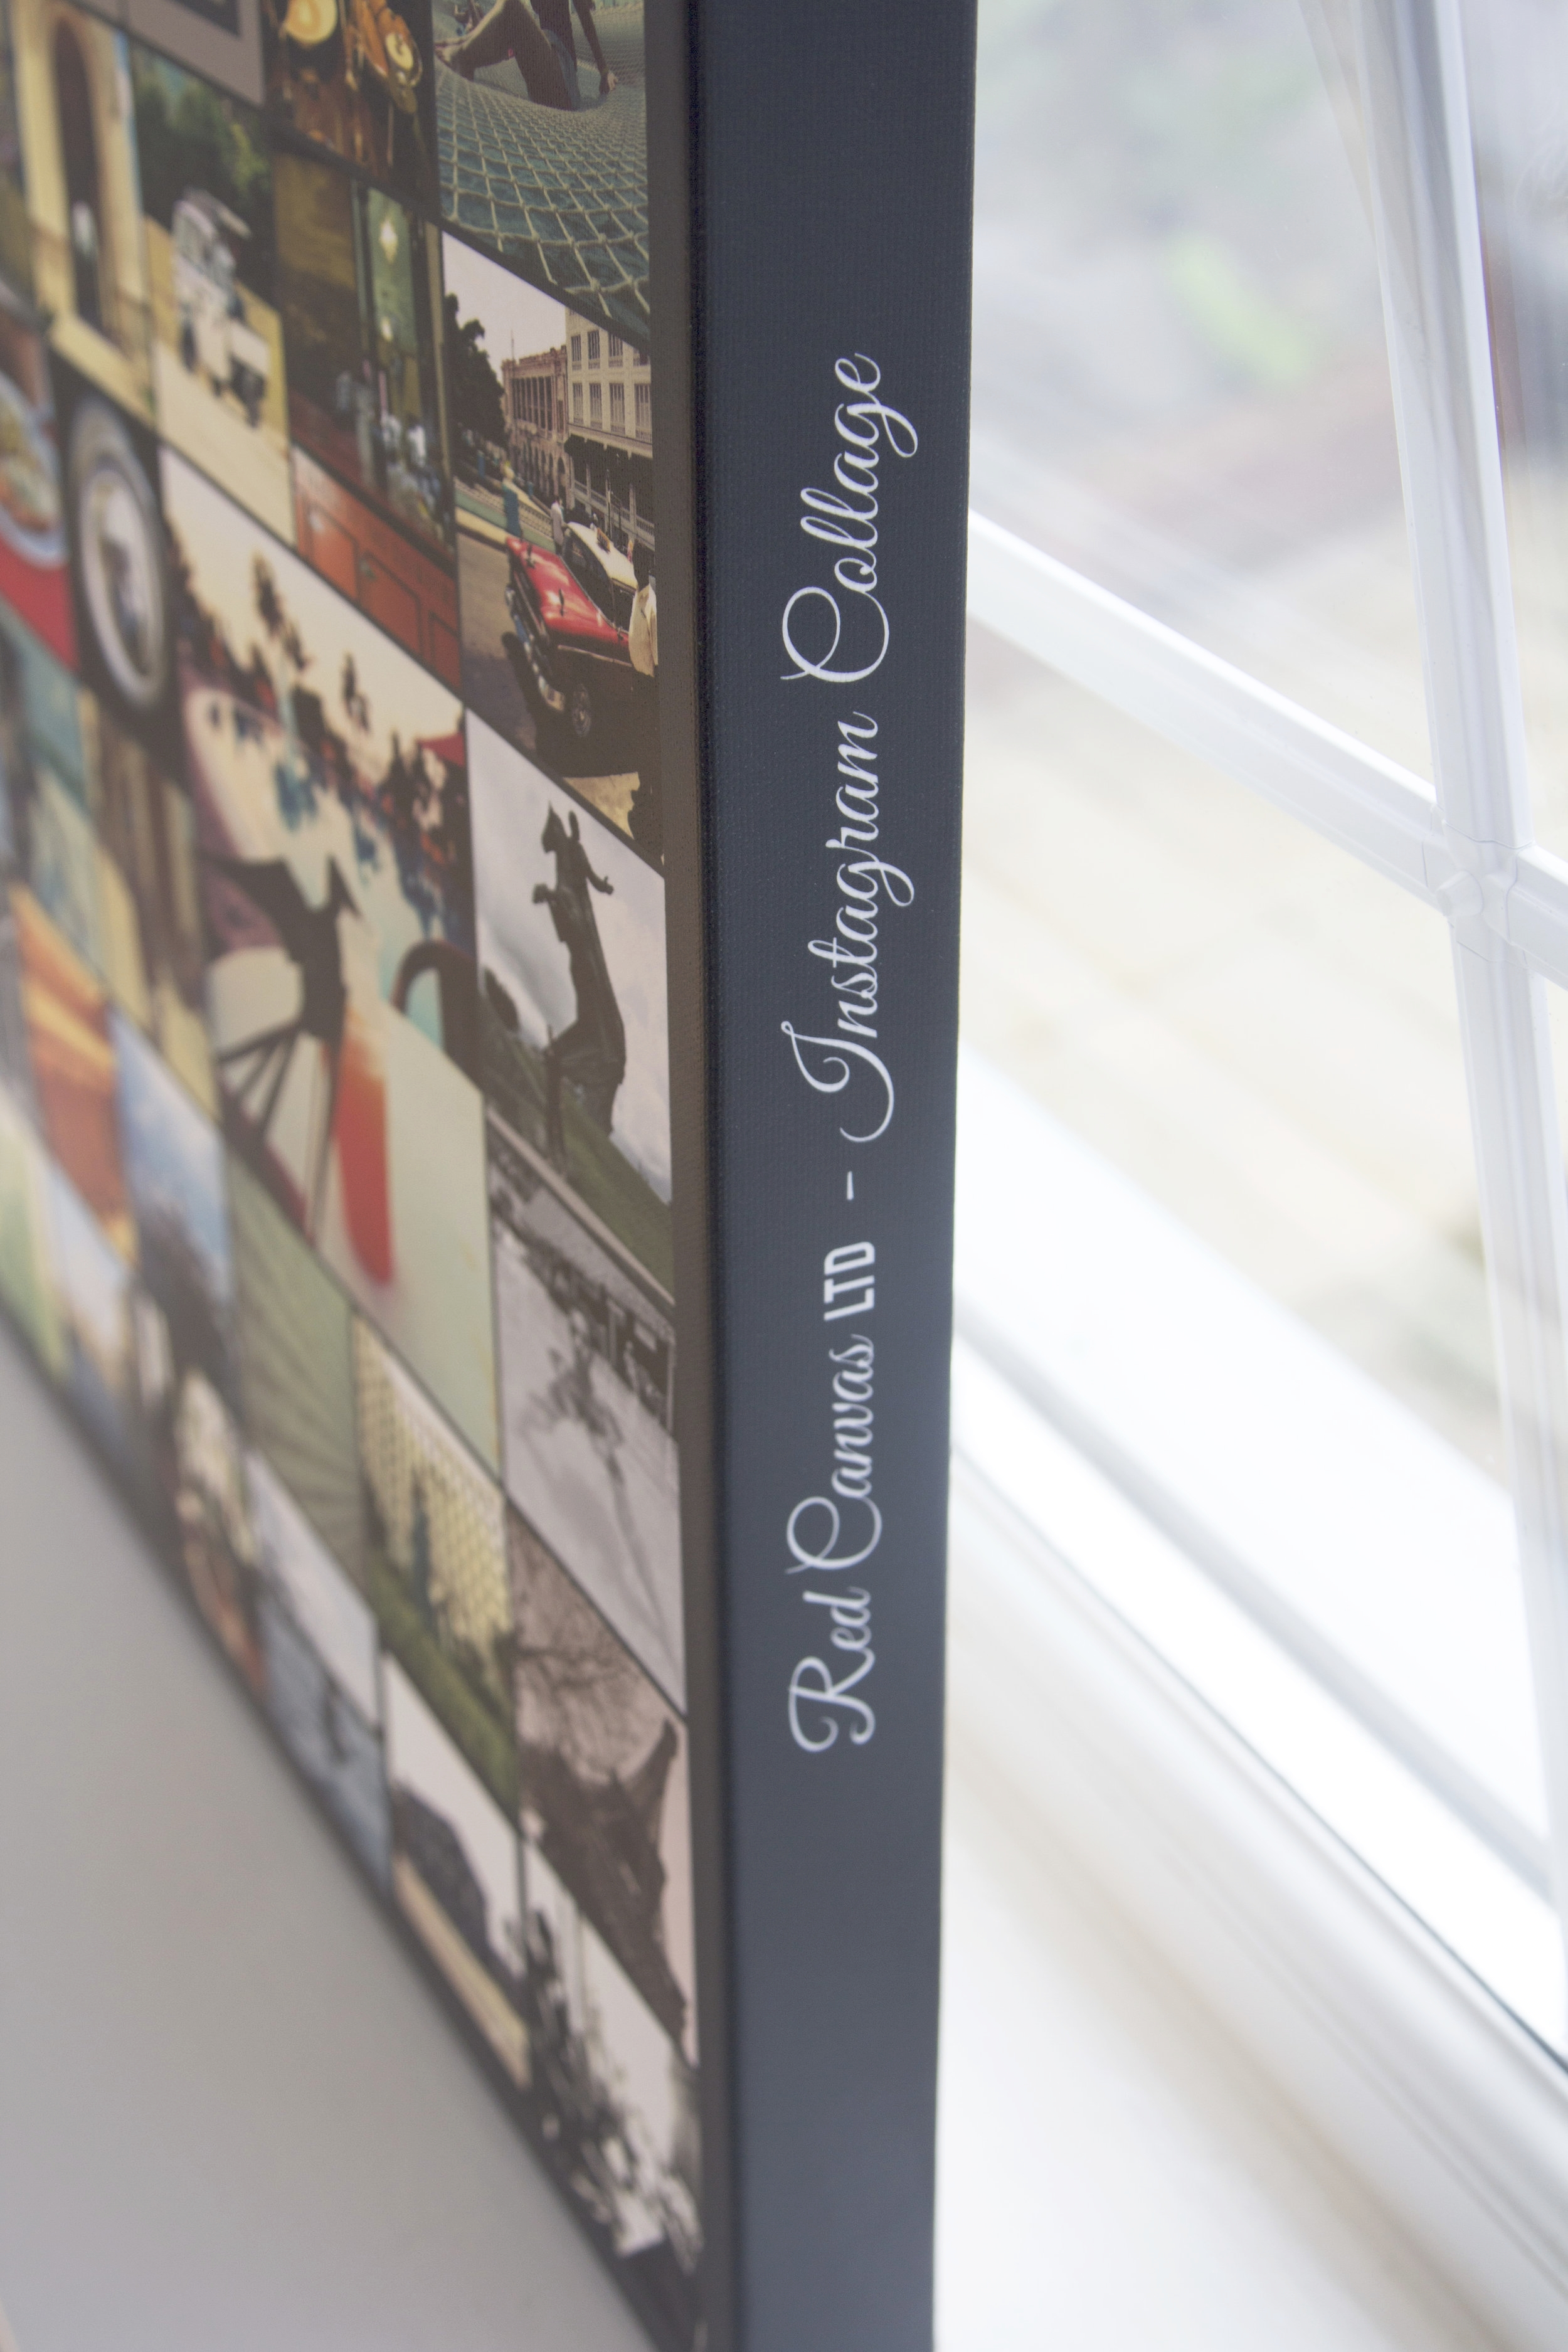 My thing: Side Text was my first innovation for the Photo Collage Canvas Print